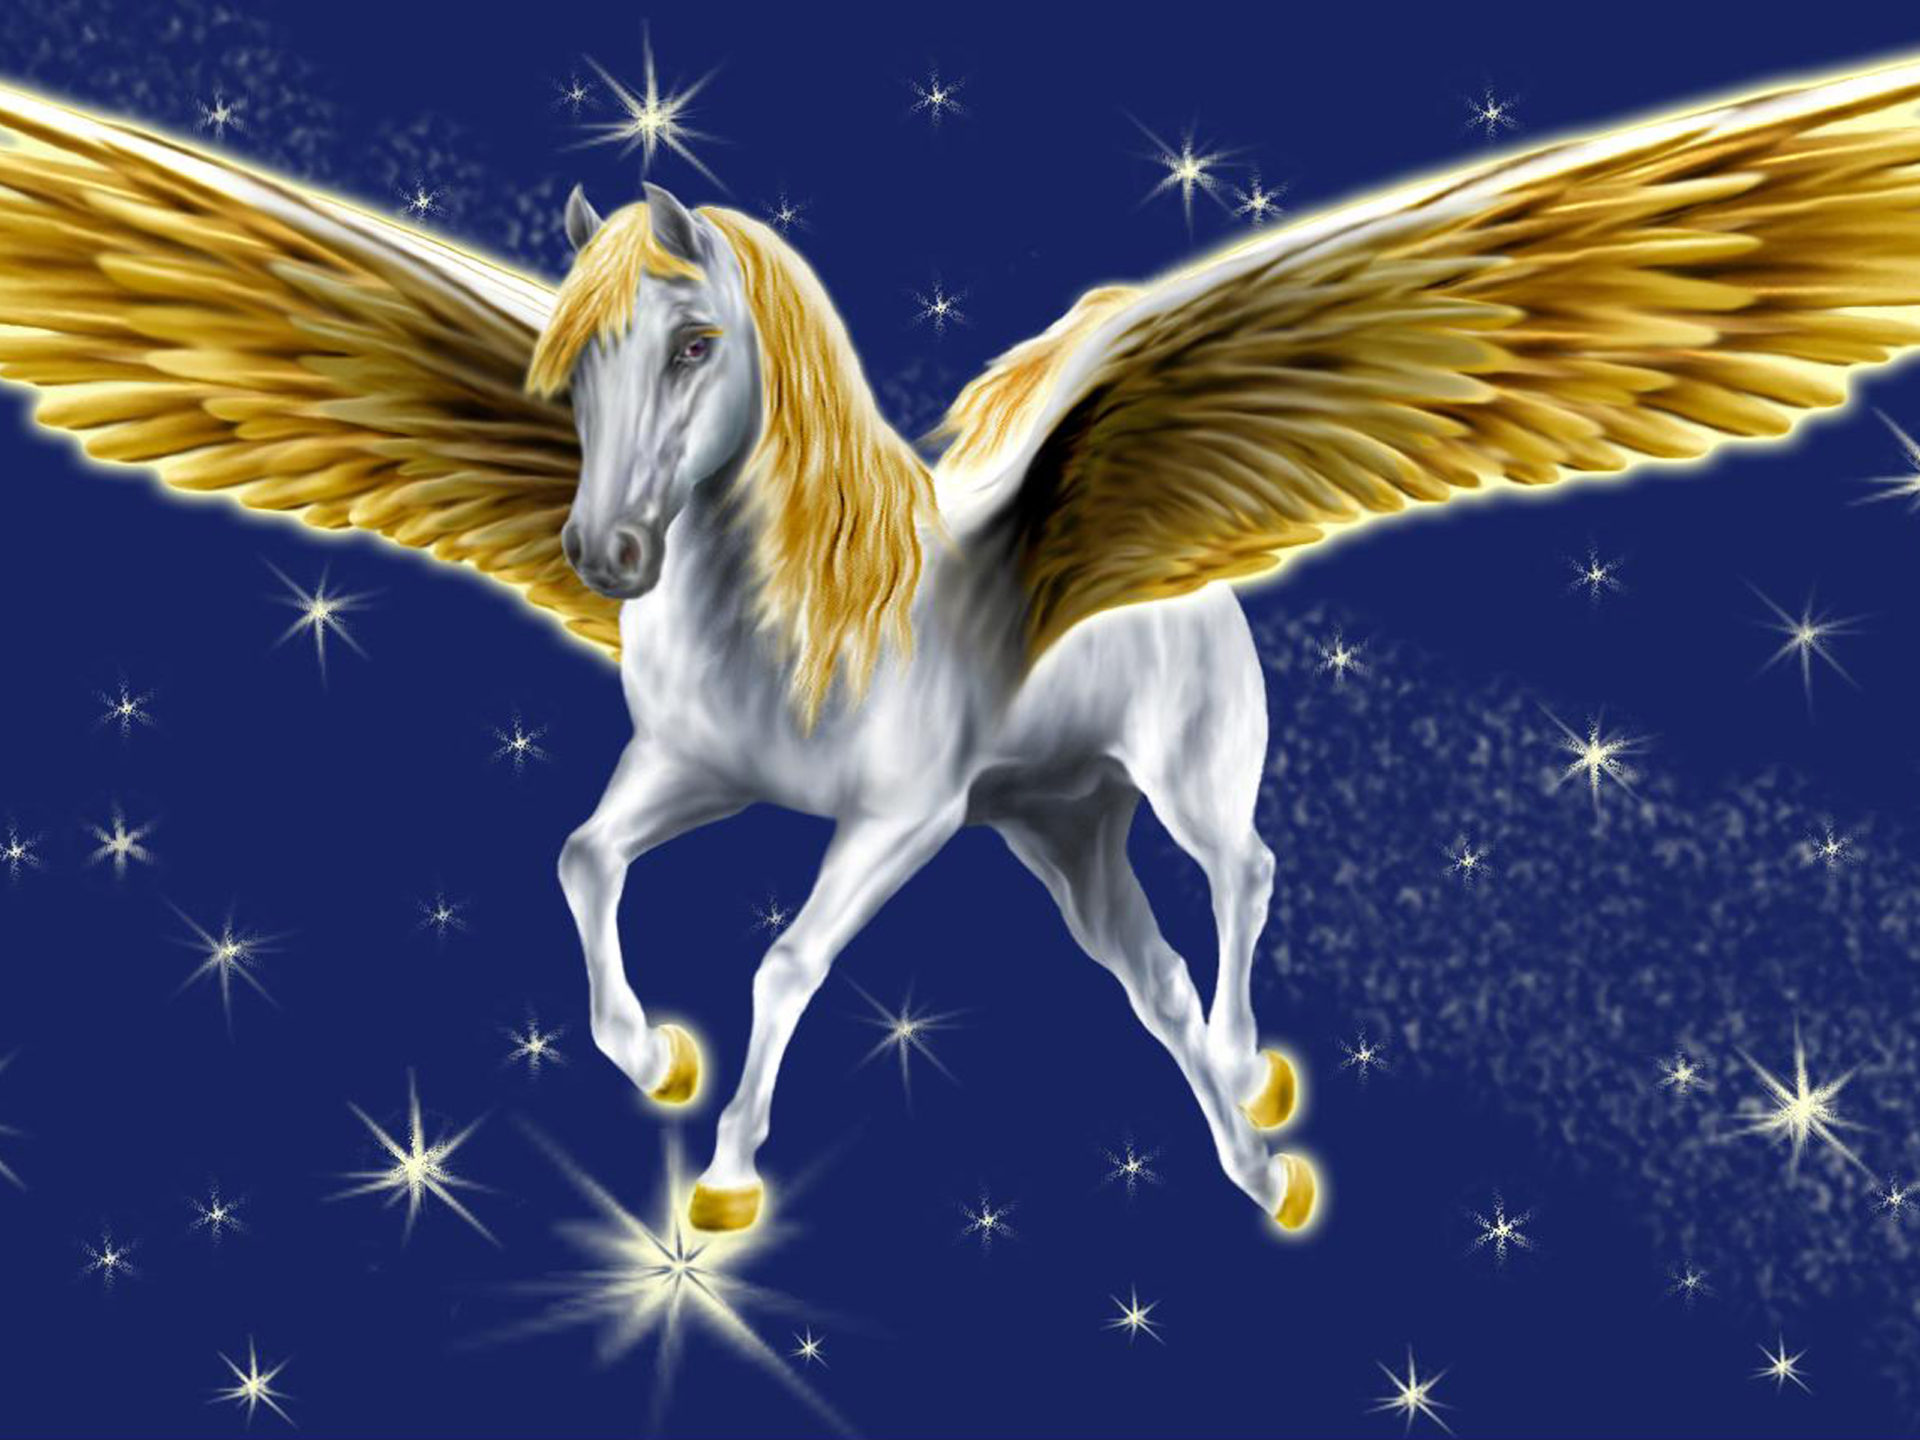 Pegasus Golden Wings Fantasy Desktop Background 3840x2400